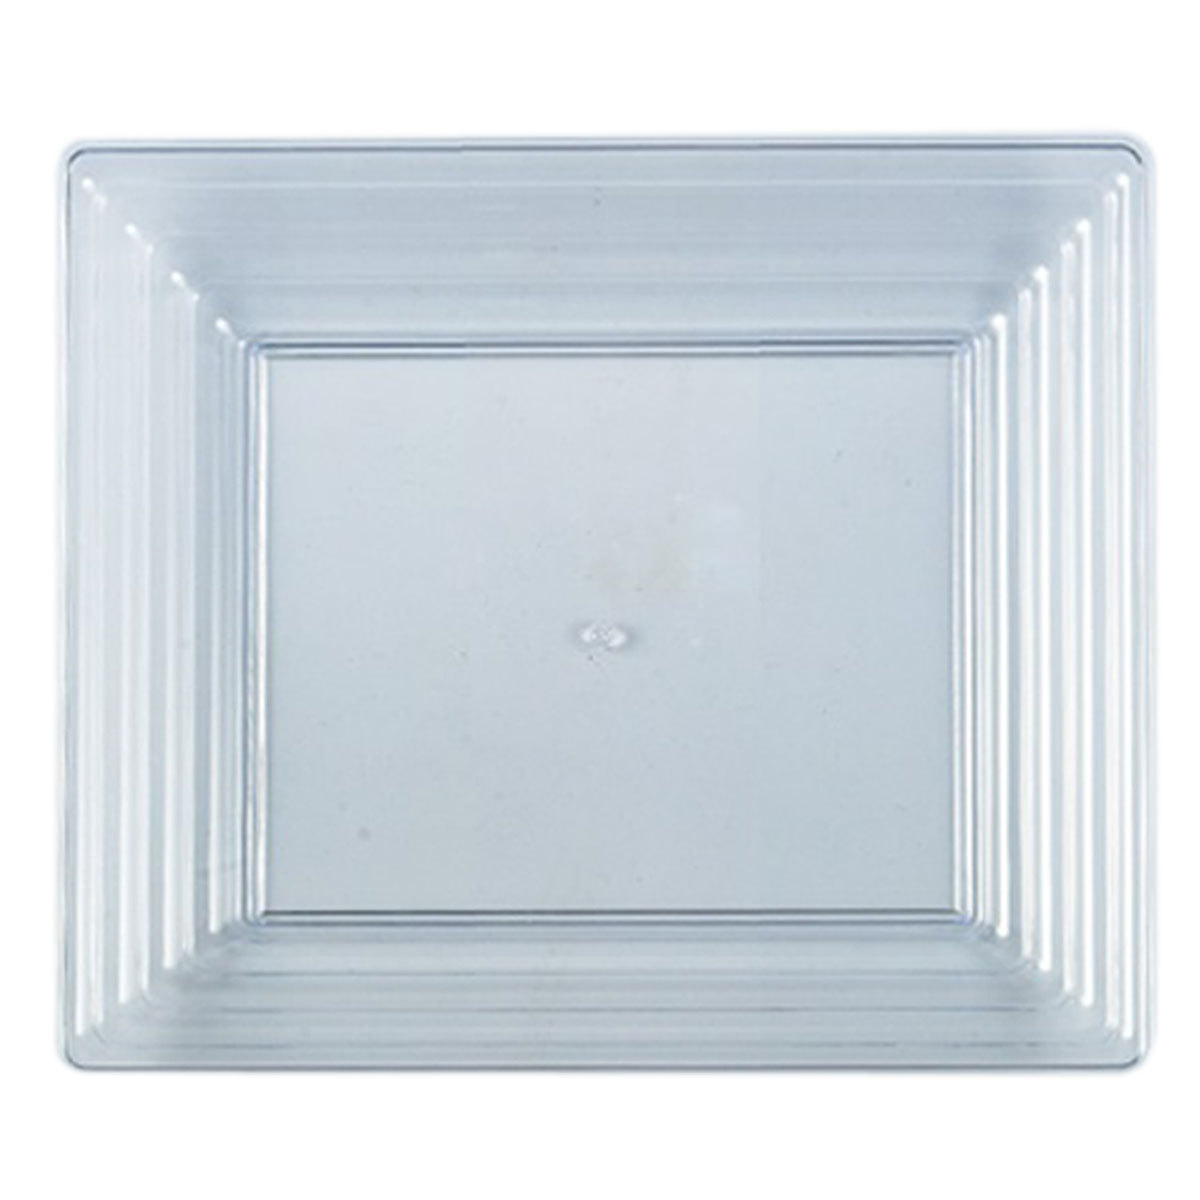 16 Sq. Clear Plastic Rectangular Serving Tray/Case of 25